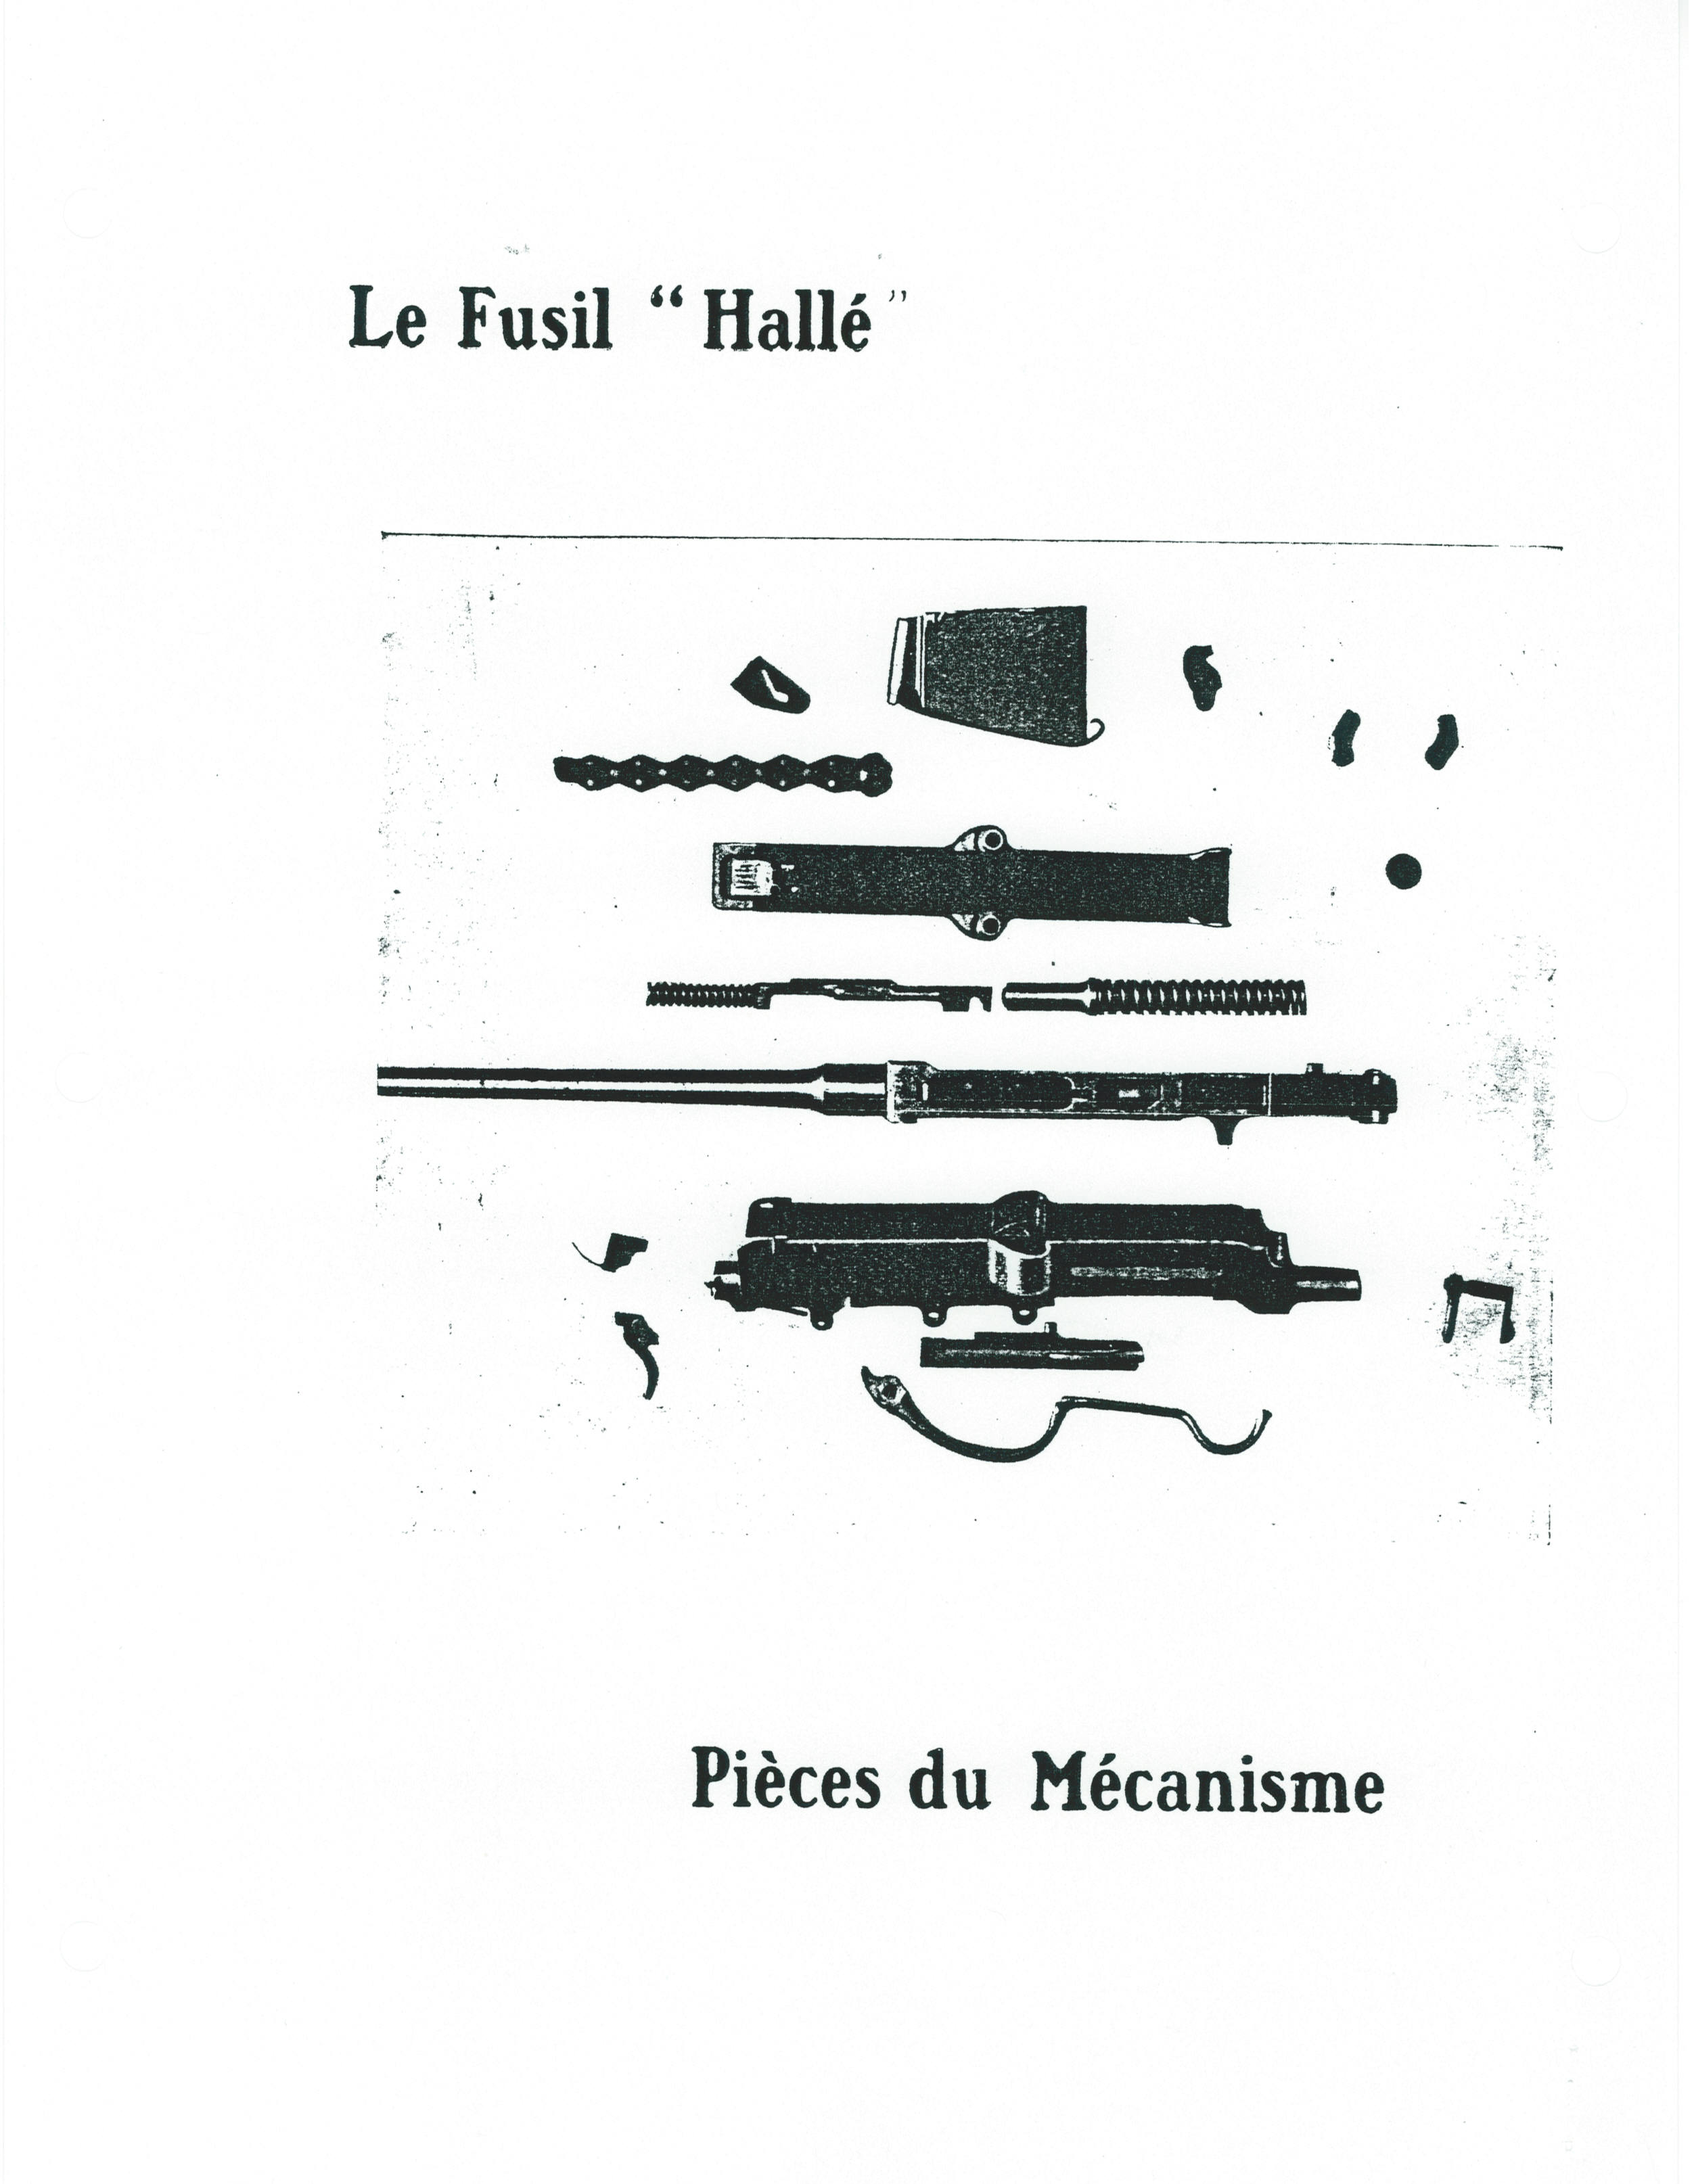 French Fusil Halle